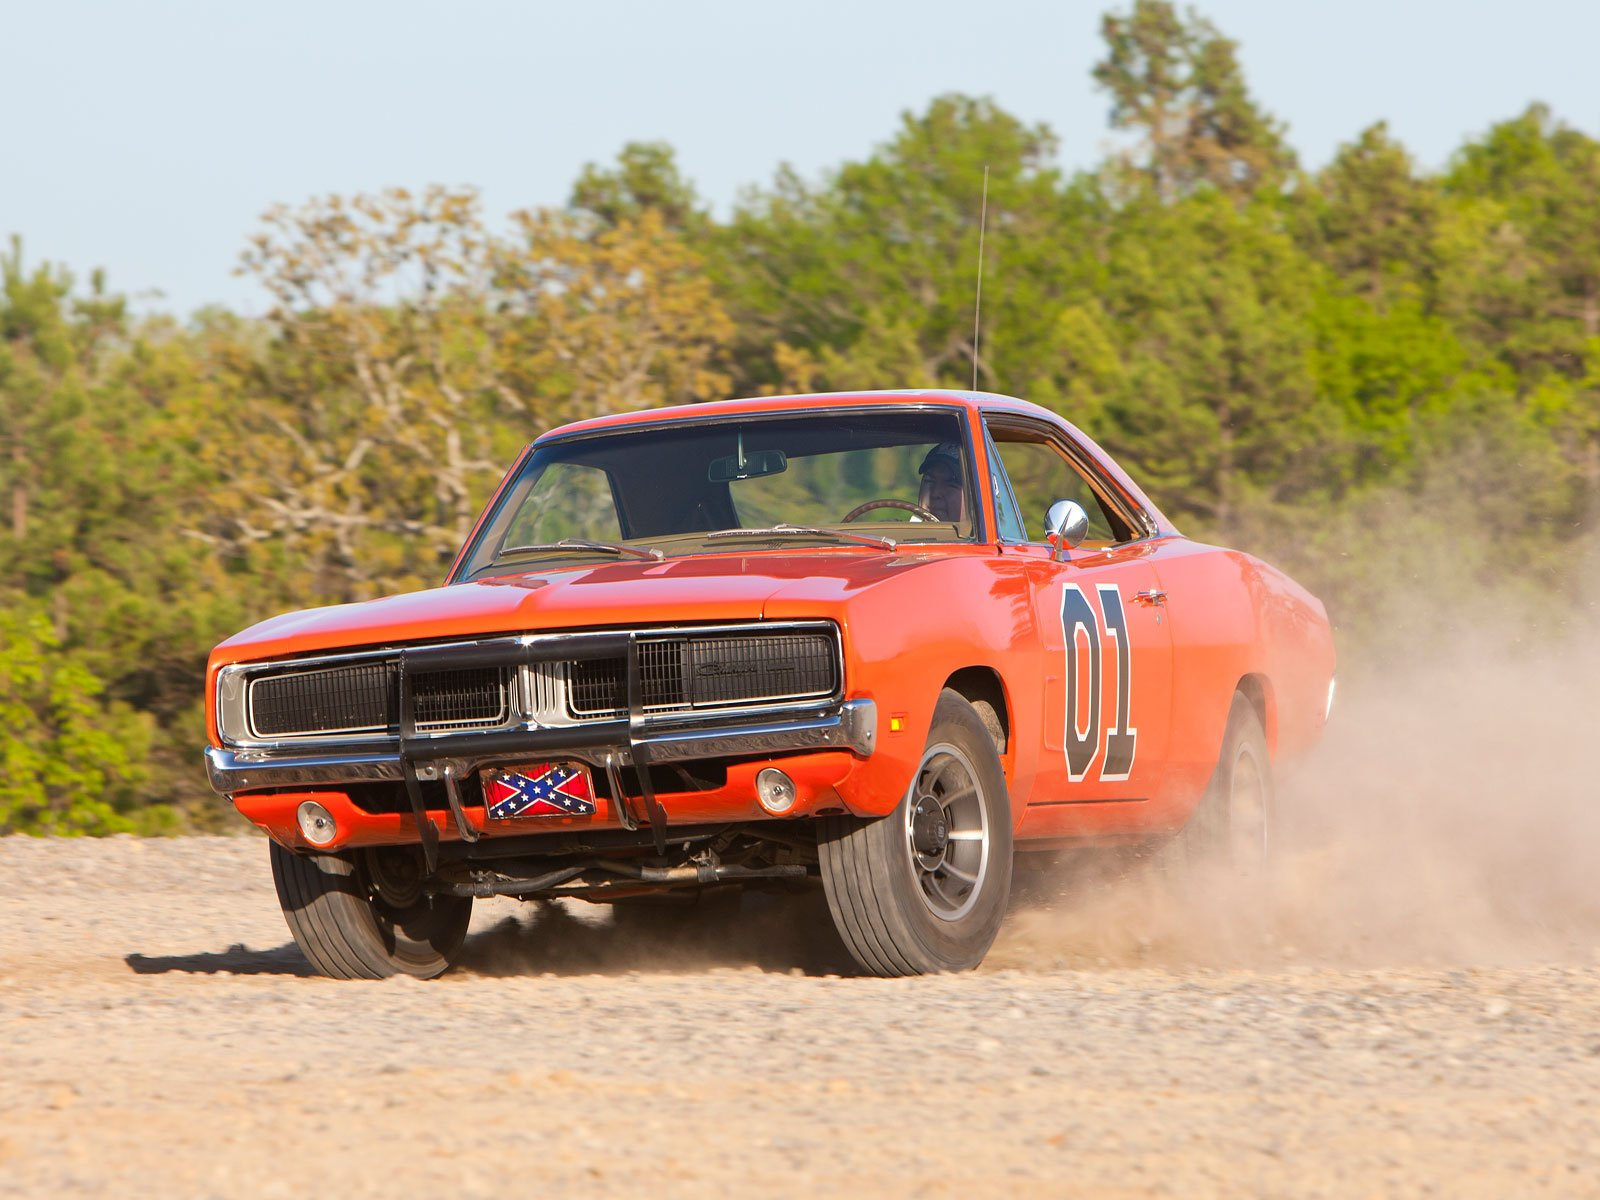 Free download The Dukes Of Hazzard Wallpapers 100 Quality The Dukes Of  [1600x1200] for your Desktop, Mobile & Tablet | Explore 70+ Dukes Of Hazzard  Wallpapers | Dukes of Hazzard Wallpaper Border,